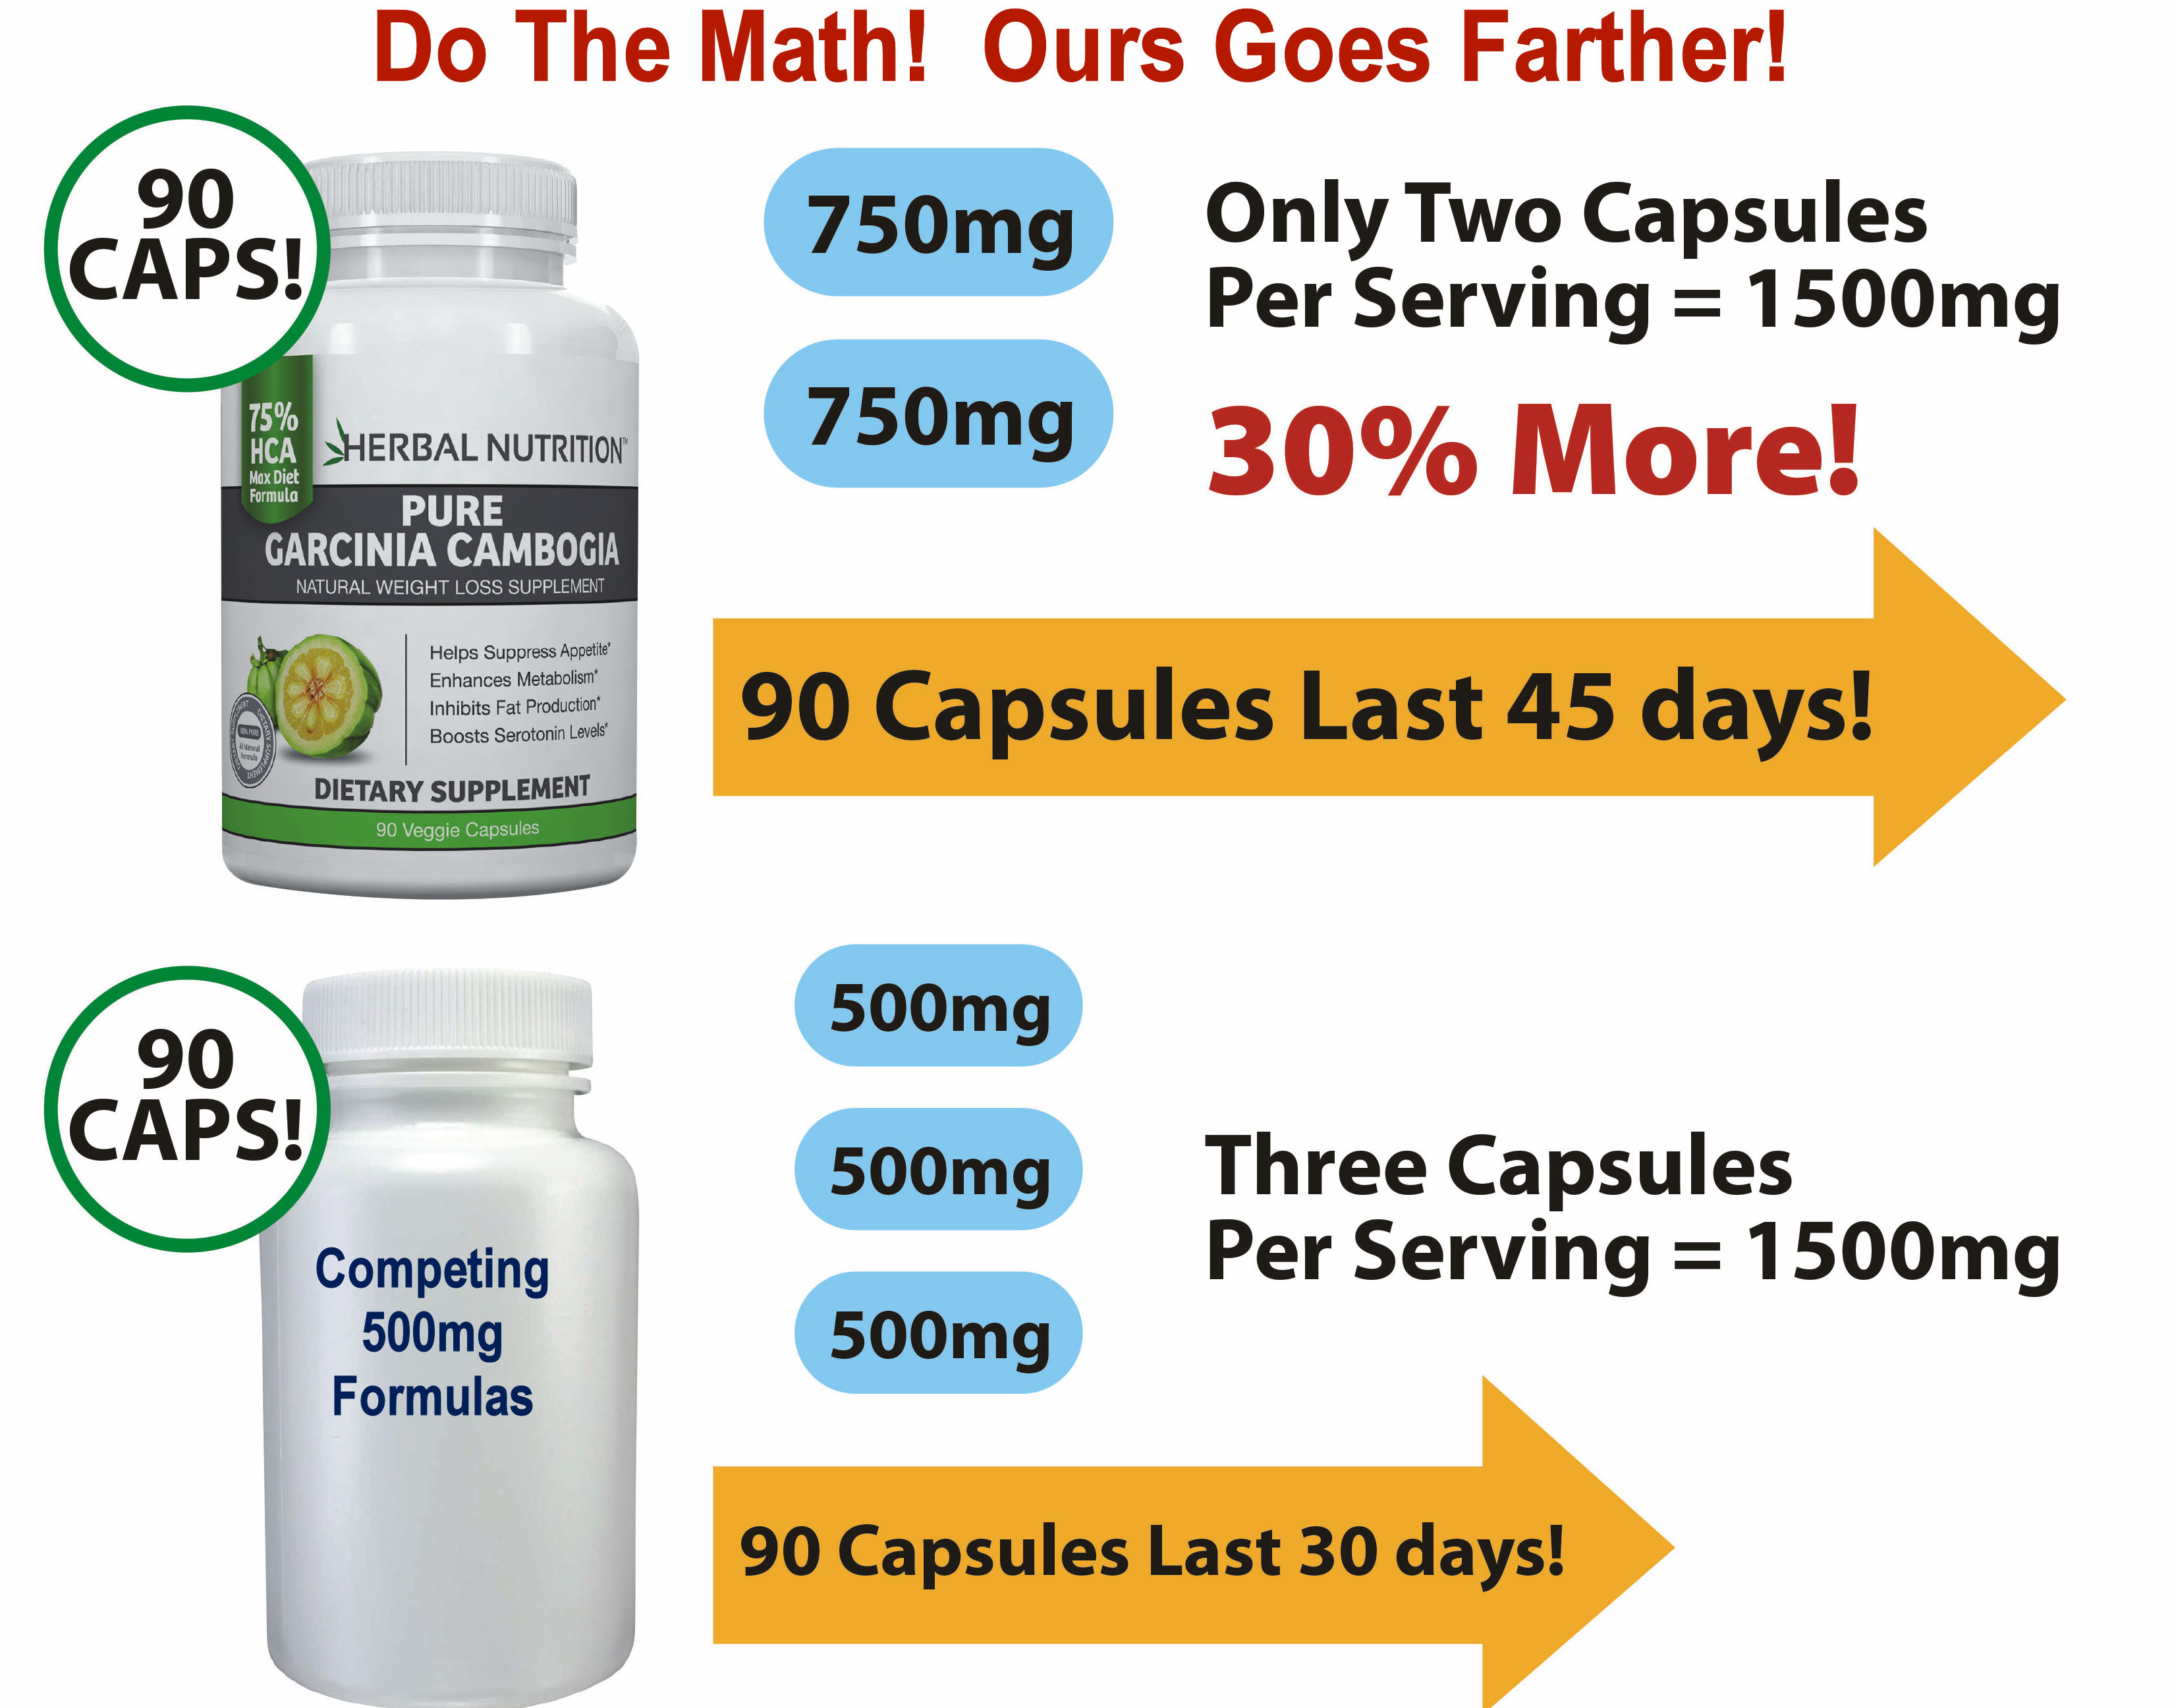 Gacinia Cambogia 30% More Per Capsule Graphic